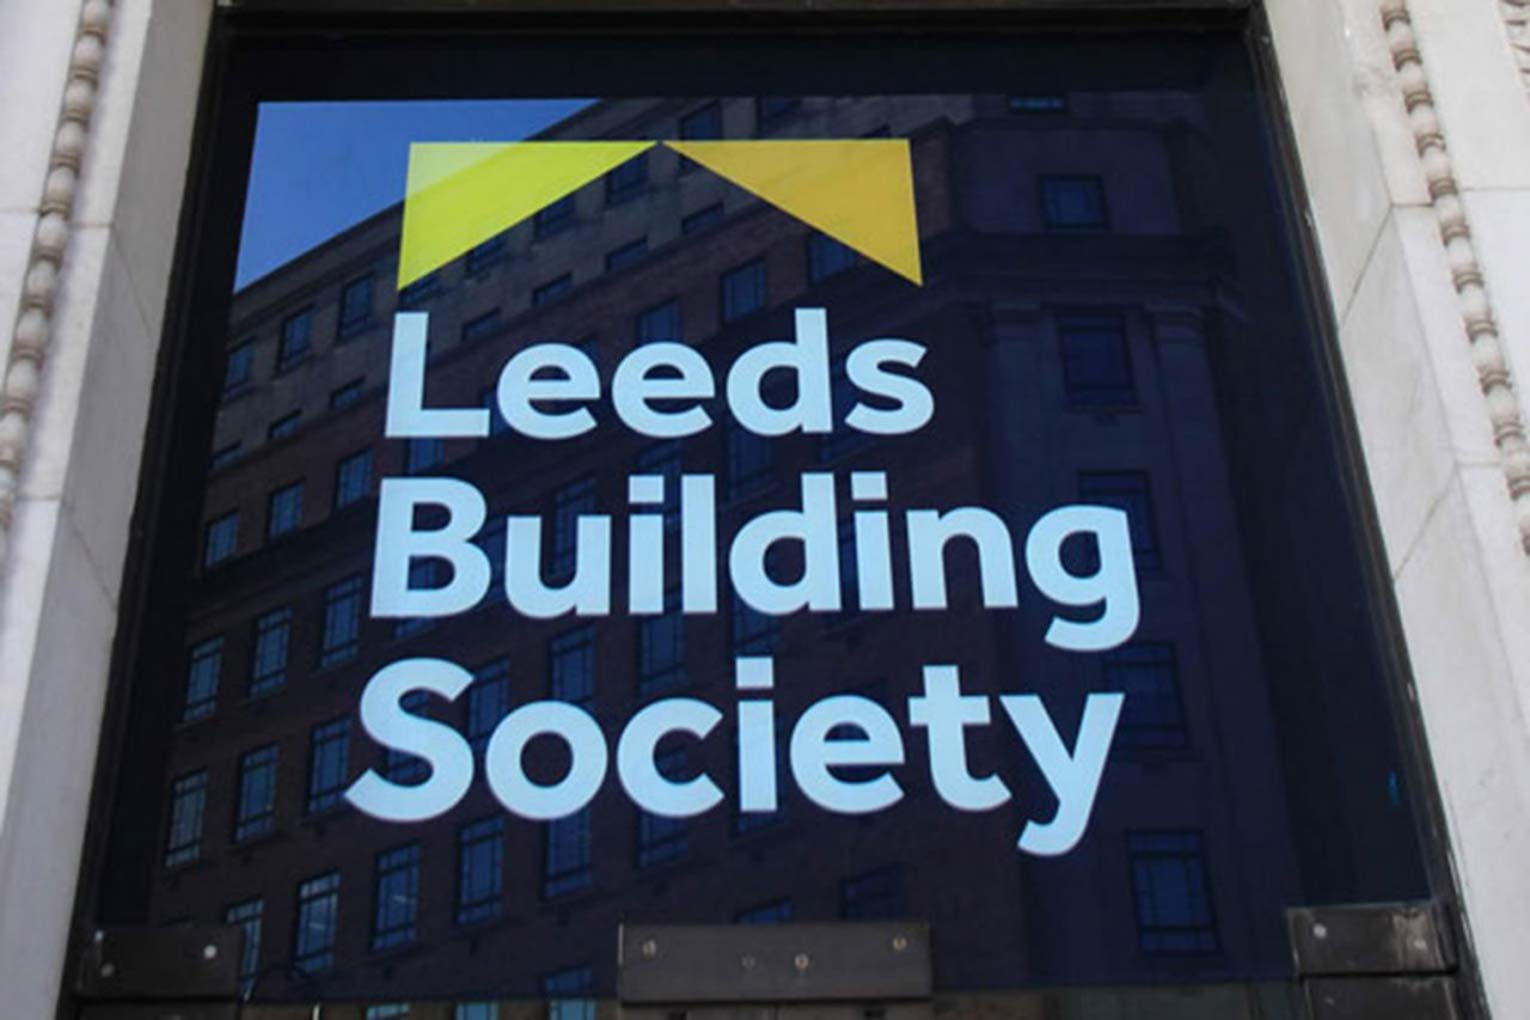 Leeds Building Society's charity partnerships boosted at AGM